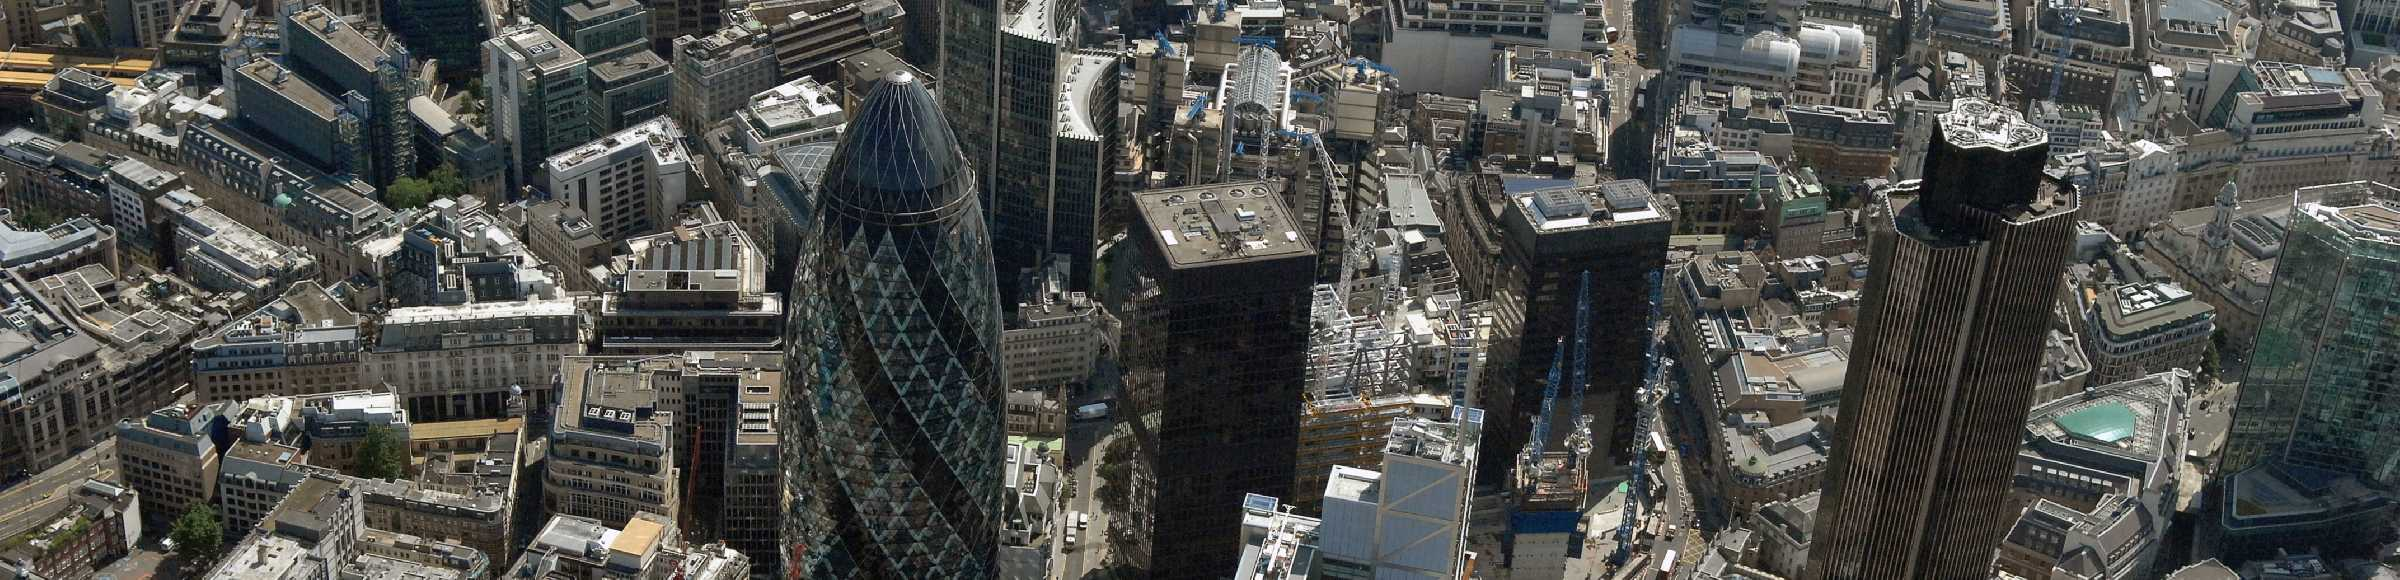 The city center in the downtown area in the district City of London in London in England, United Kingdom